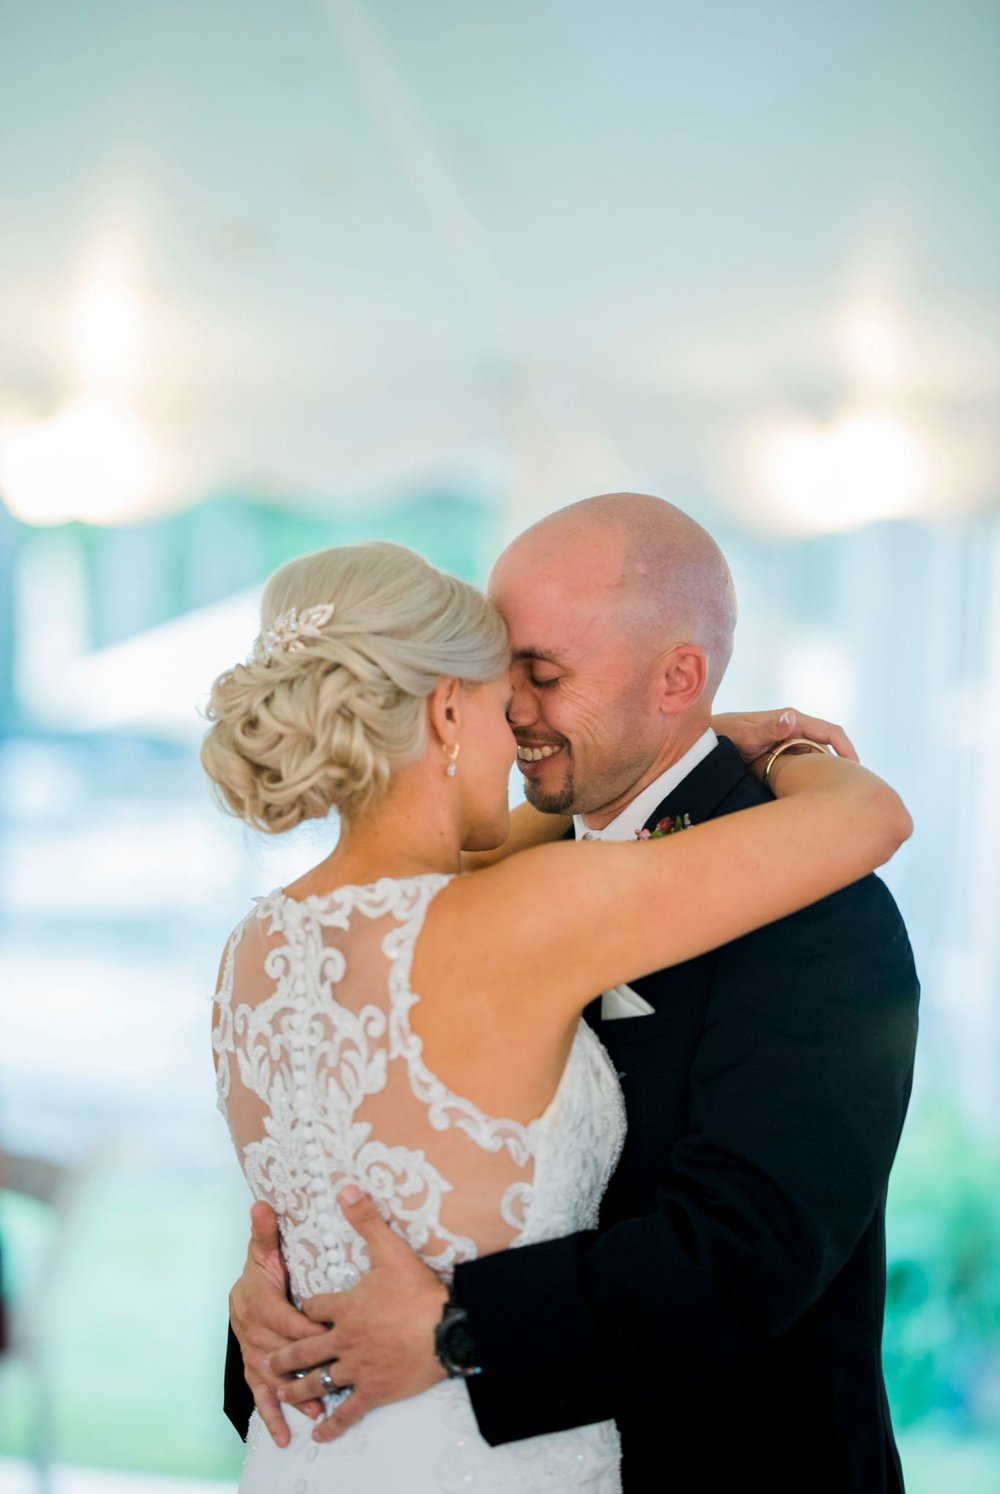 TheMillHouse_ChathamVA_WeddingPhotographer_VirginiaWeddingPhotographer_9.jpg 126.jpg